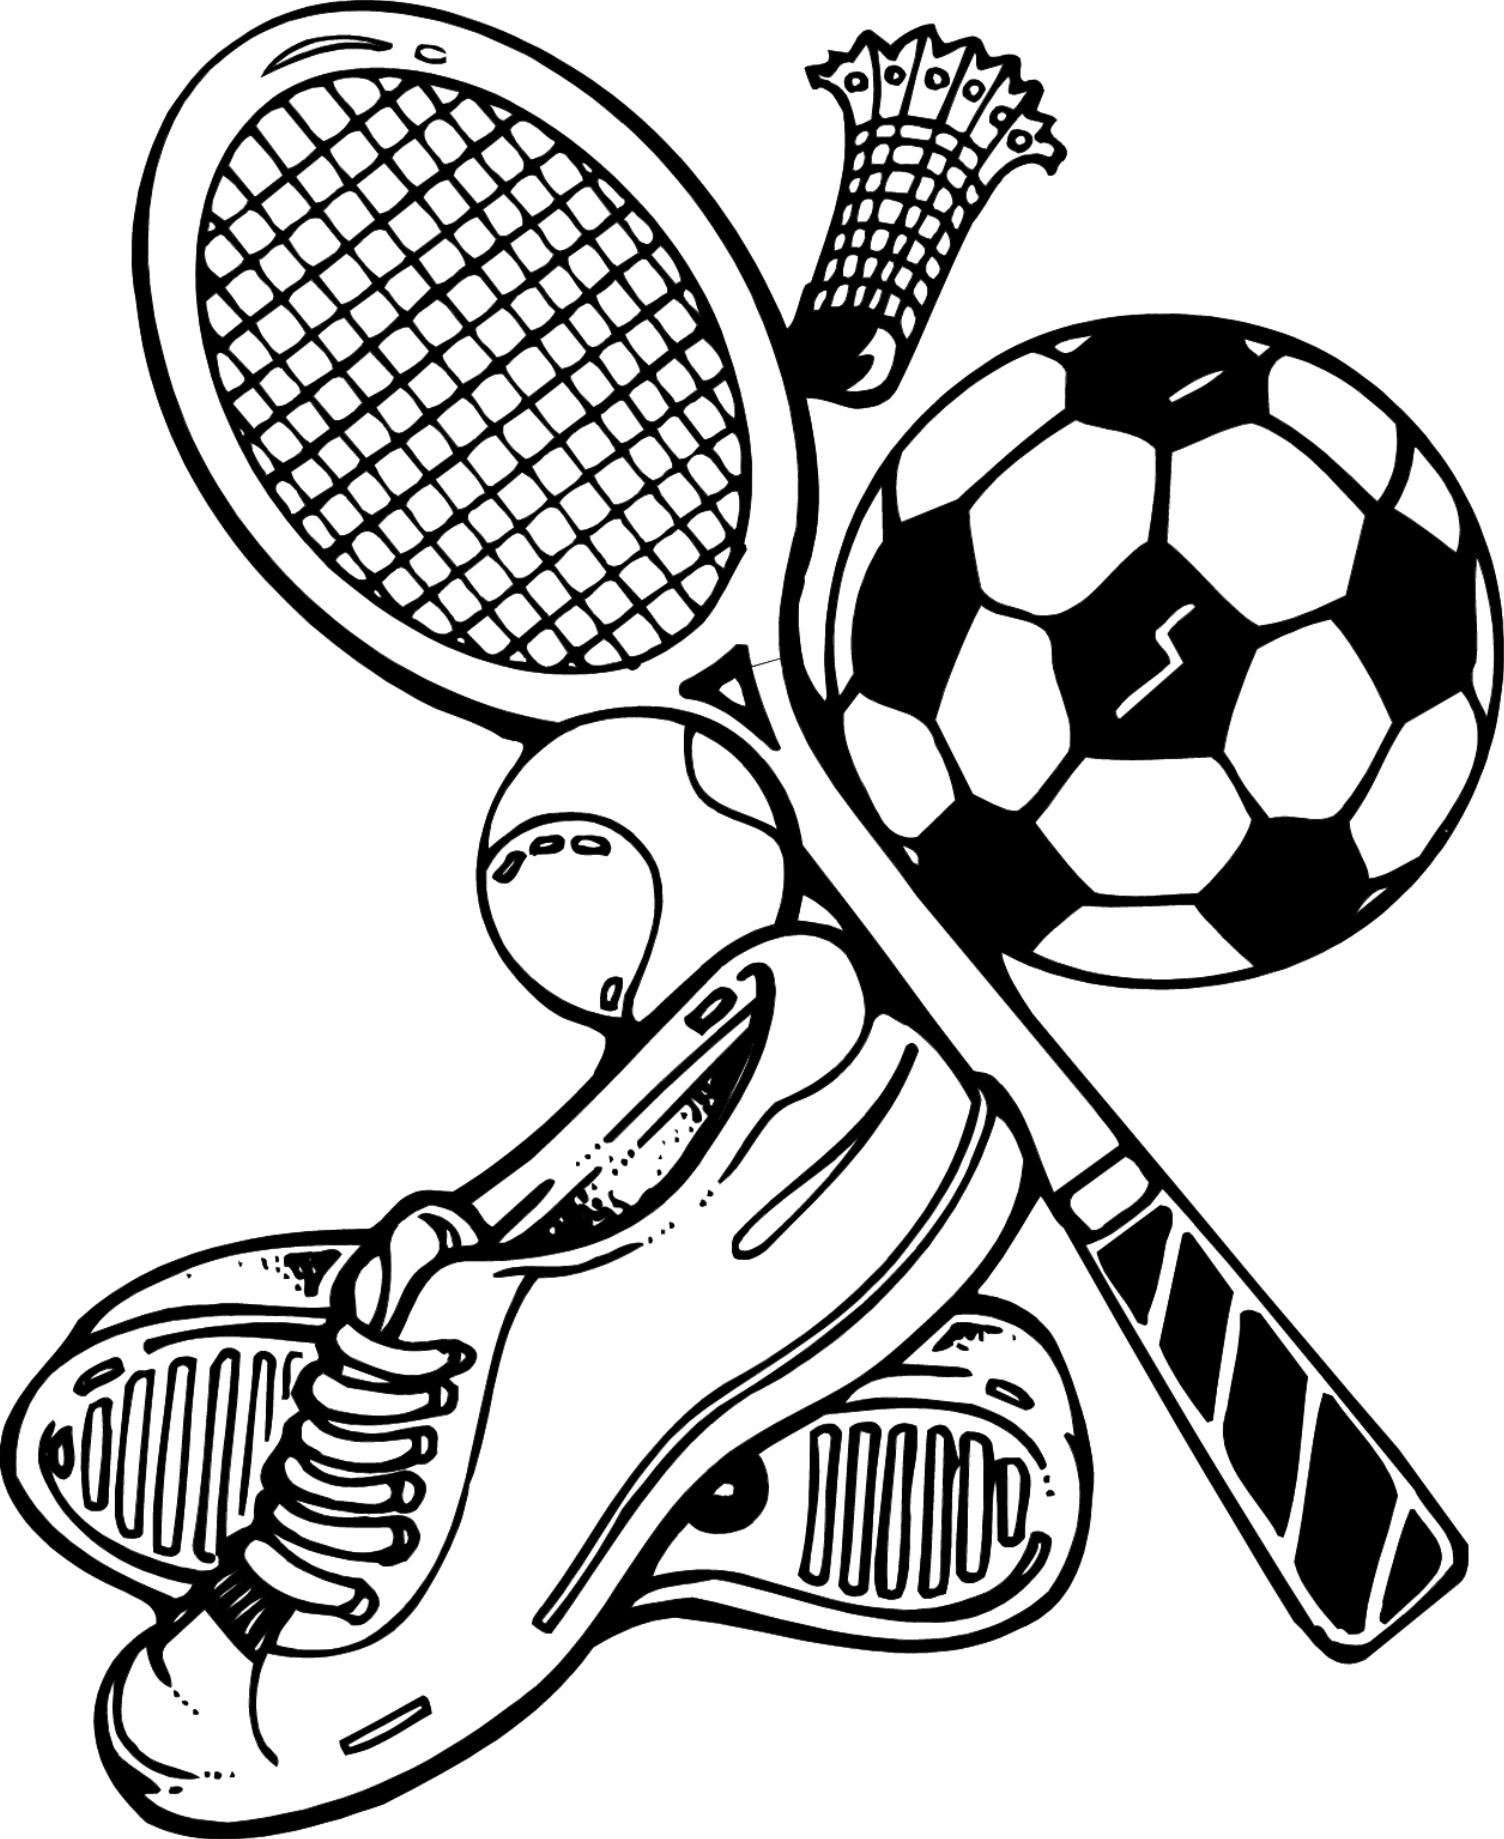 sports day colouring coloring pages category for stunning sports day coloring day sports colouring